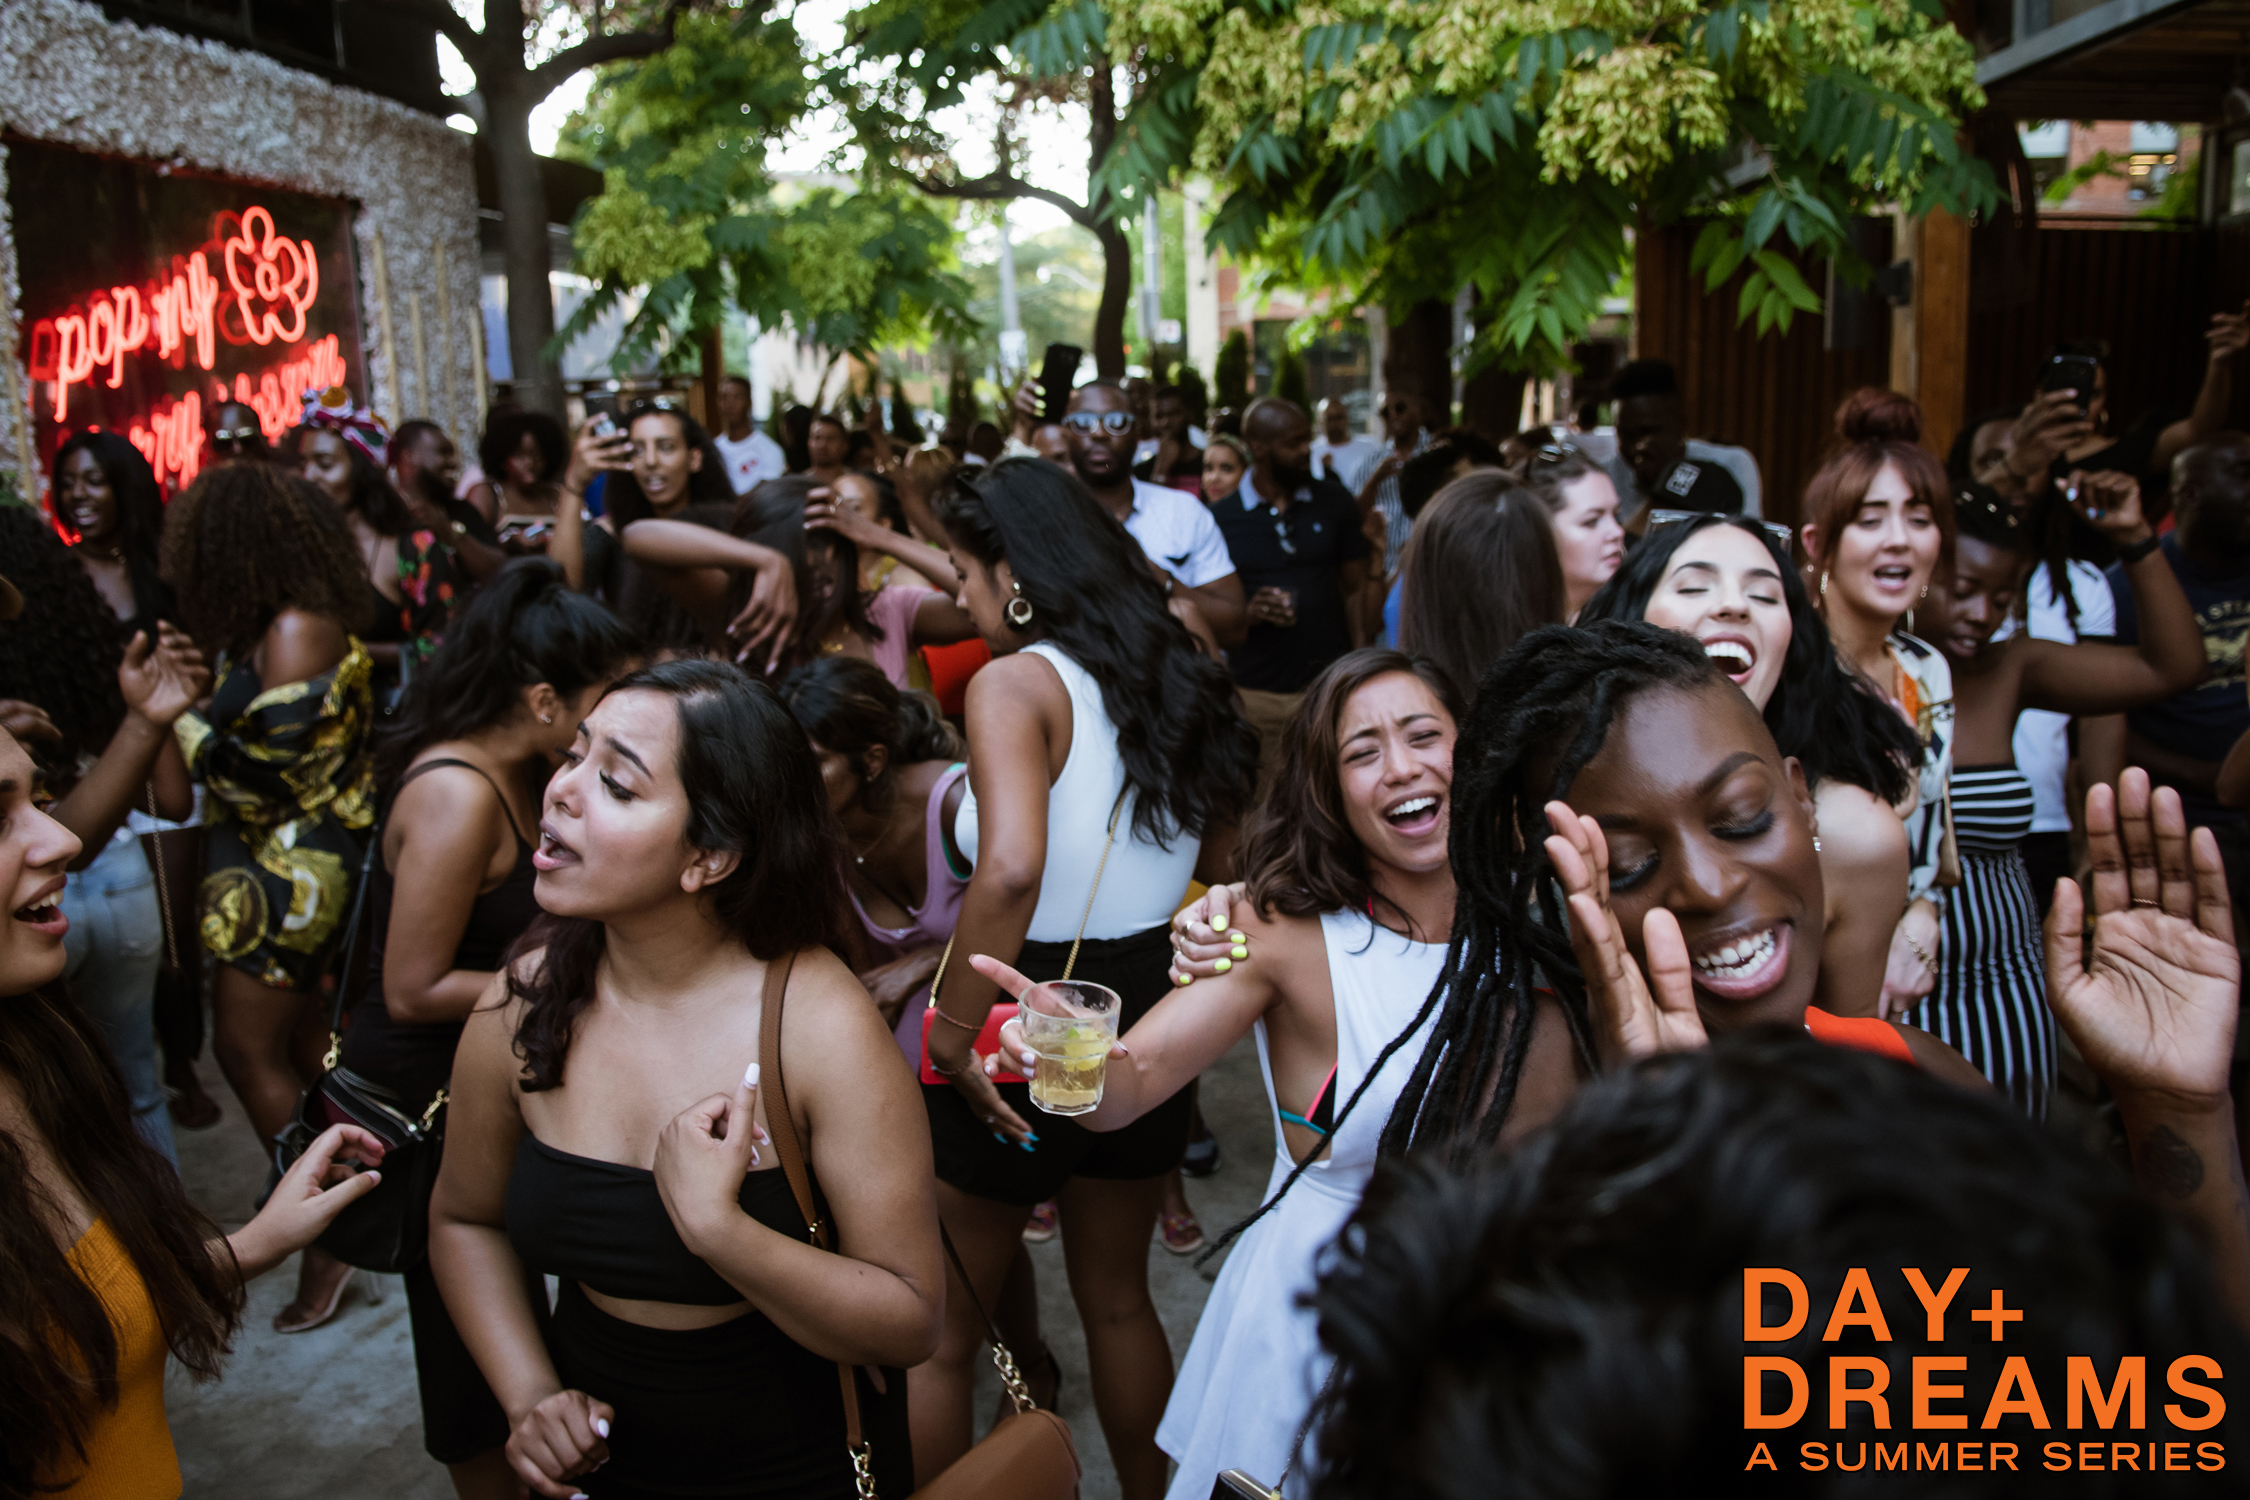 DAY DREAMS | Pop-up Day Party